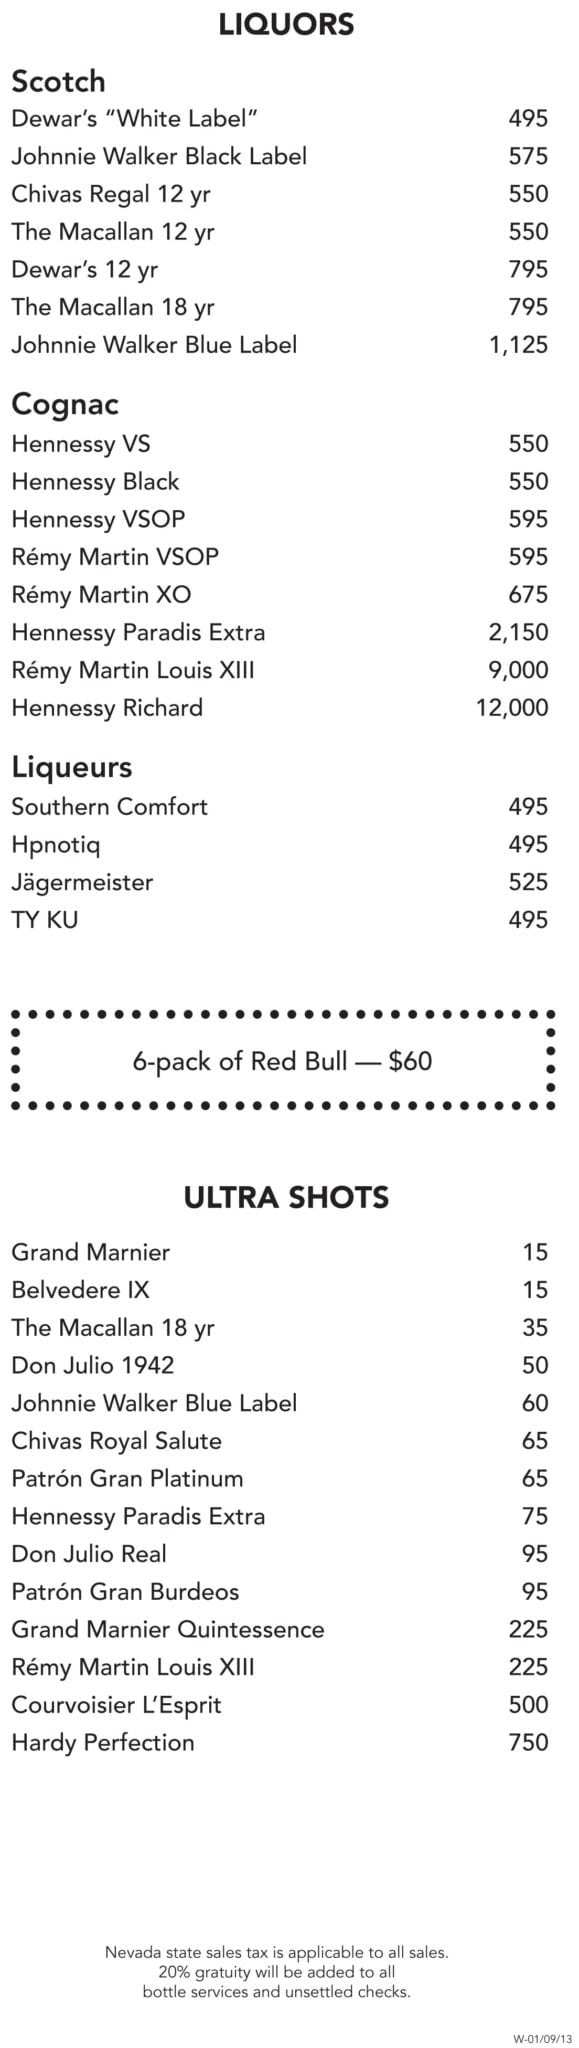 Encore Beach Club Bottle Menu Surrender Liquors Shots